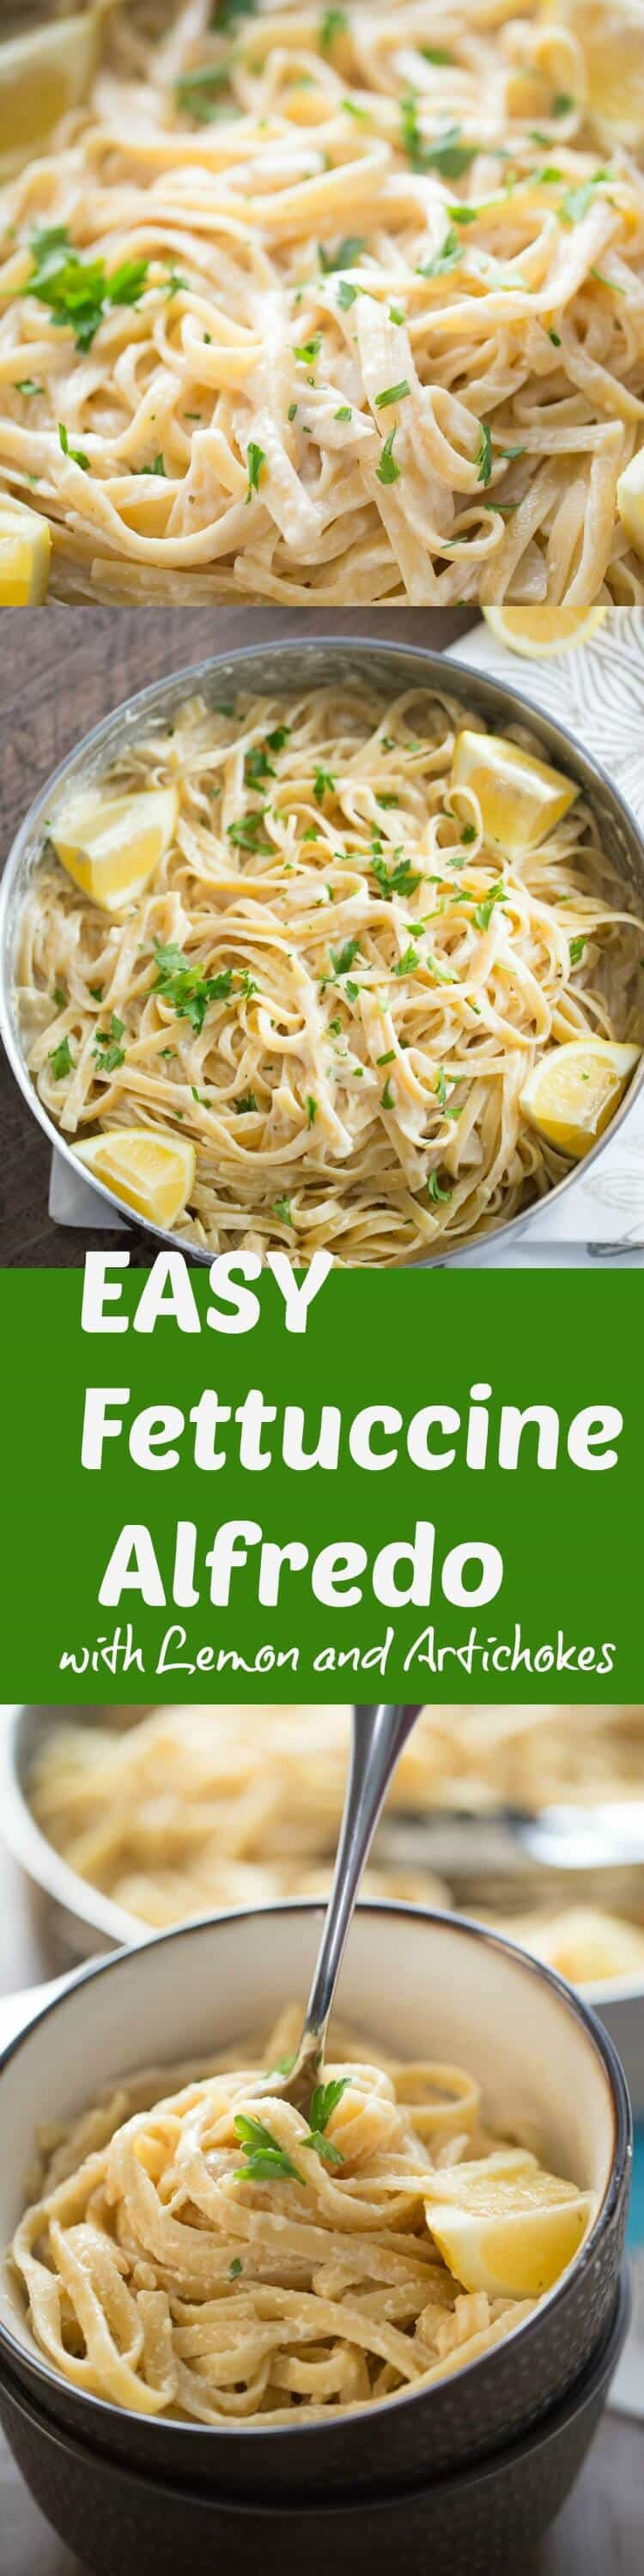 This easy Fettuccine Alfredo recipe is so light and tasty! The lemon sauce is creamy and smooth!